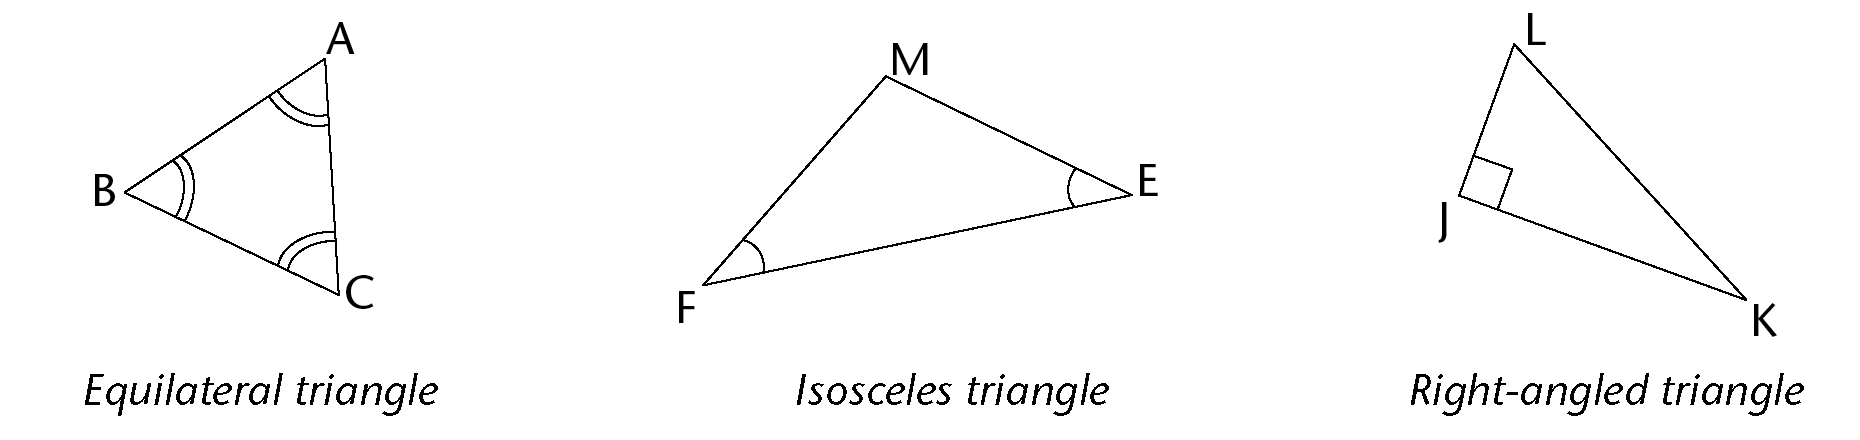 hight resolution of Types of triangles   Geometry of shapes   Siyavula